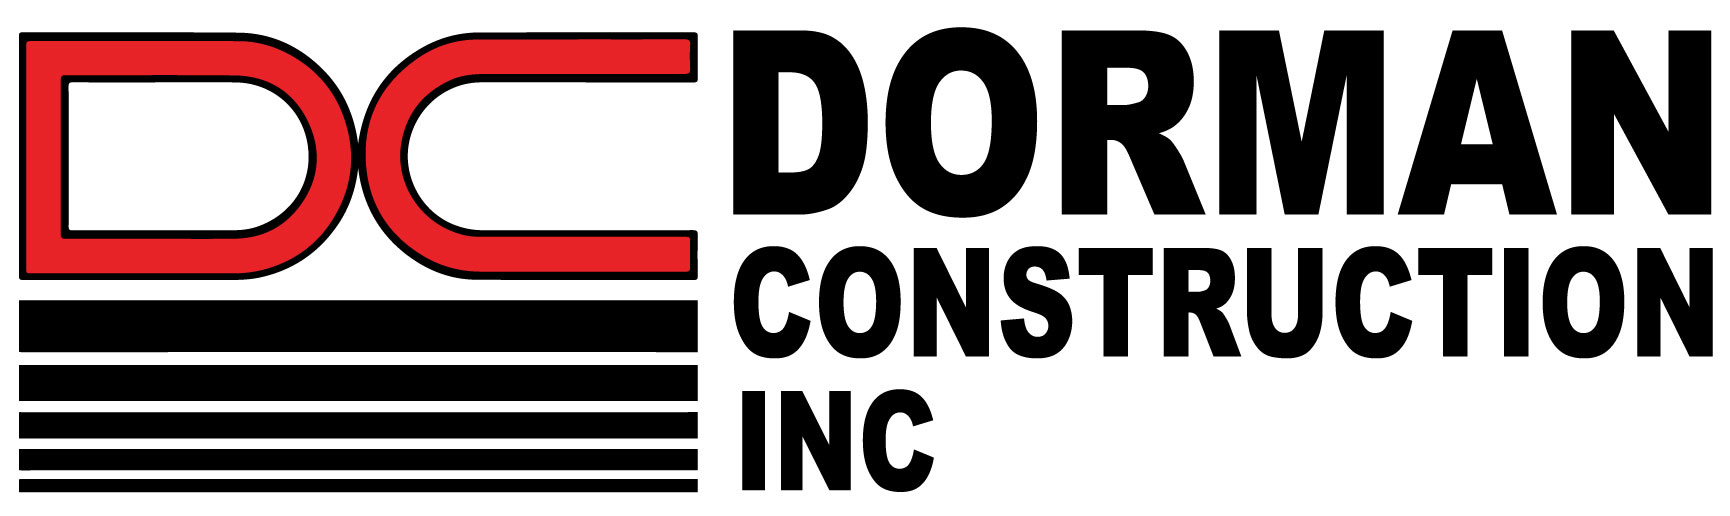 Dorman Construction - Commercial, Residential Construction, Springfield Oregon